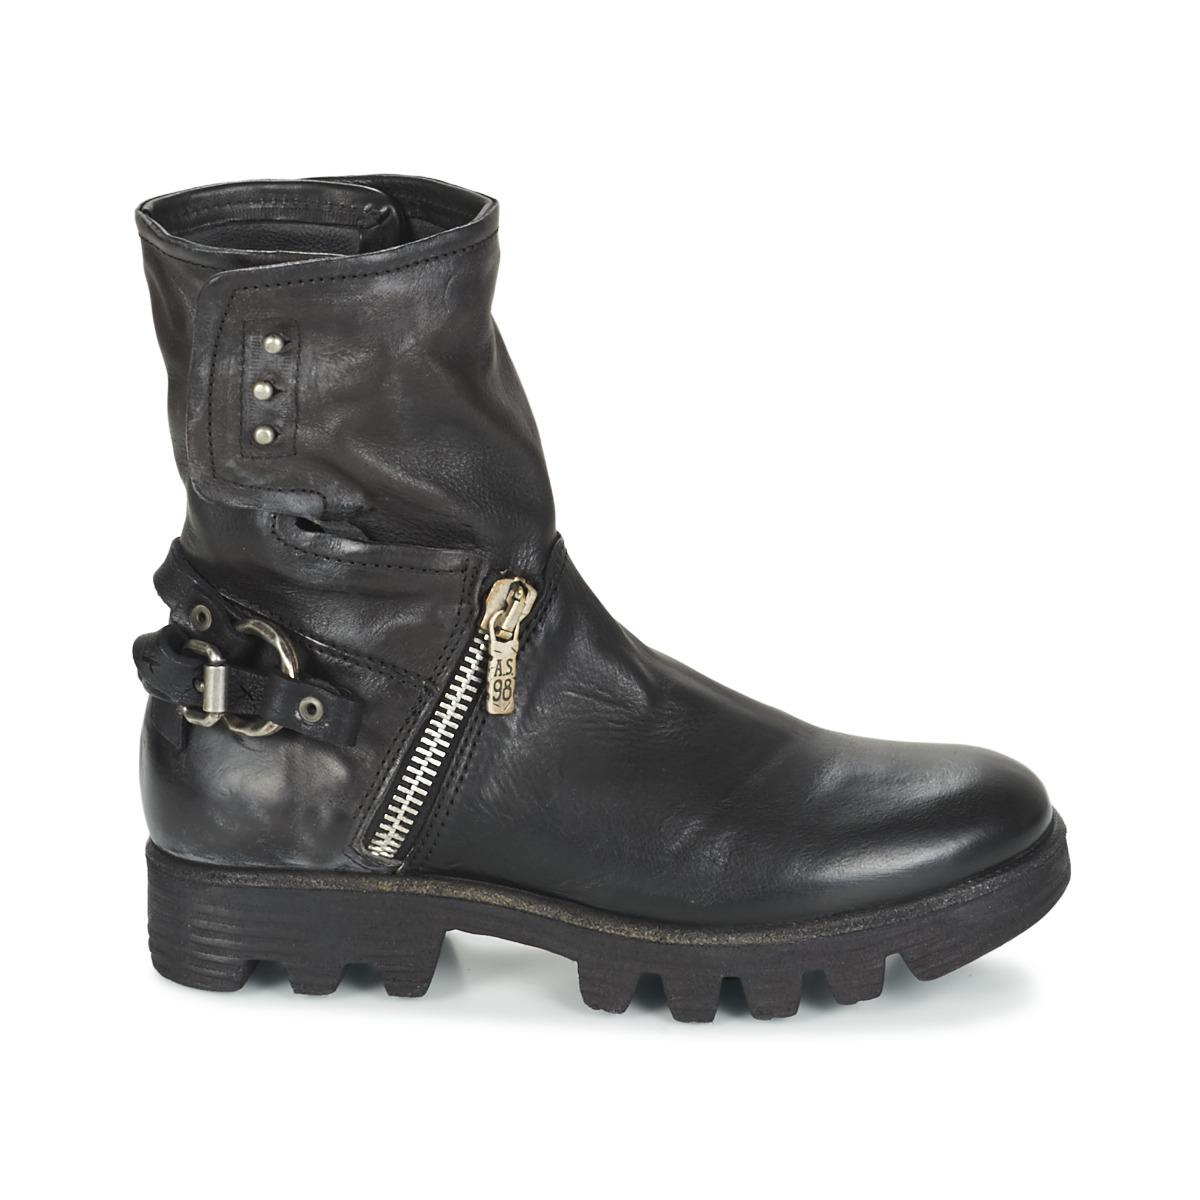 Airstep / A.S.98 BREAK women's Mid Boots in Outlet Store Sale Online Gdl8cOK